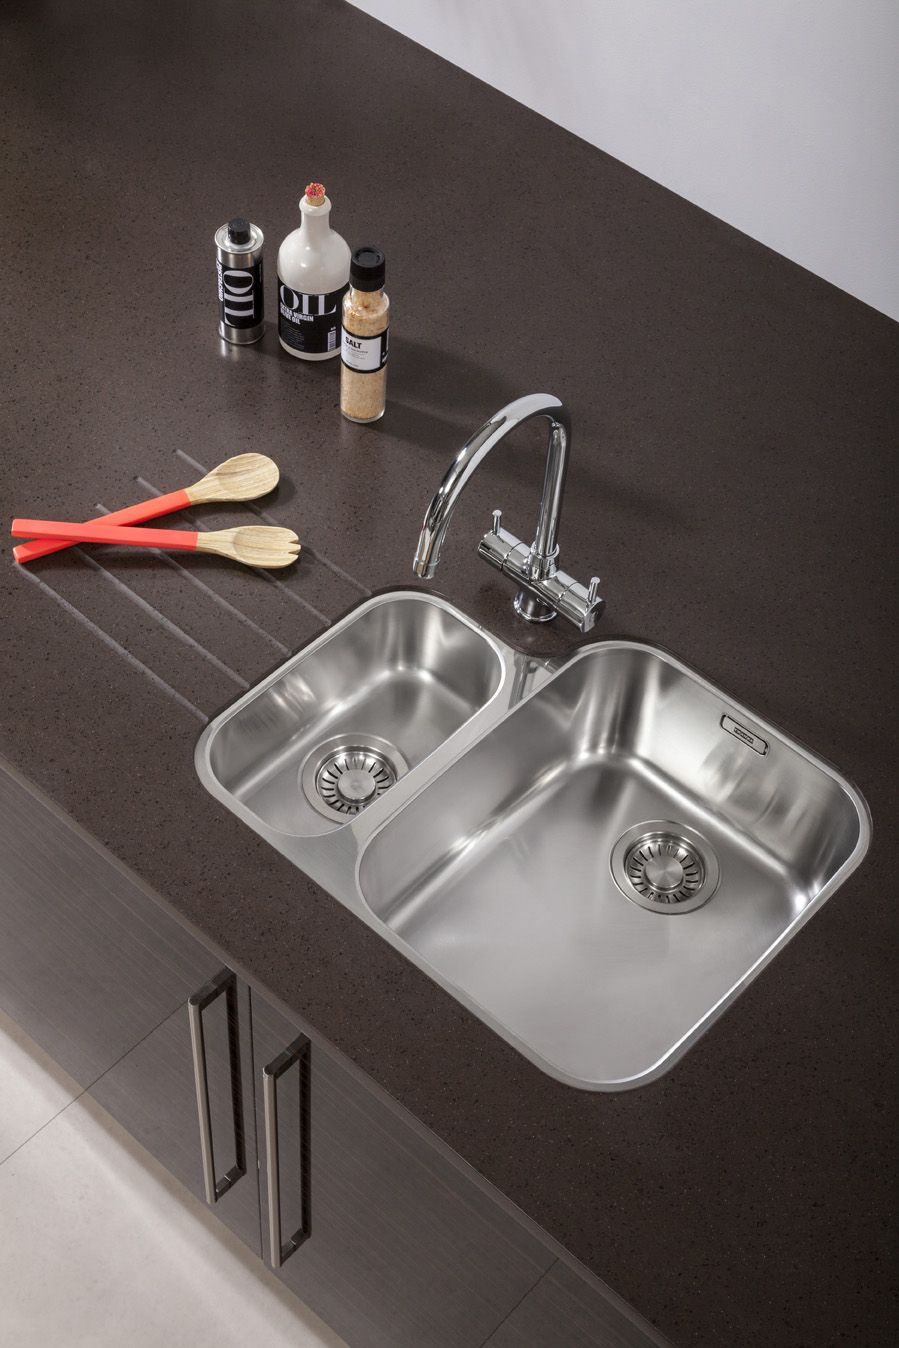 Franke ariane undermount sink and athena tap in chrome